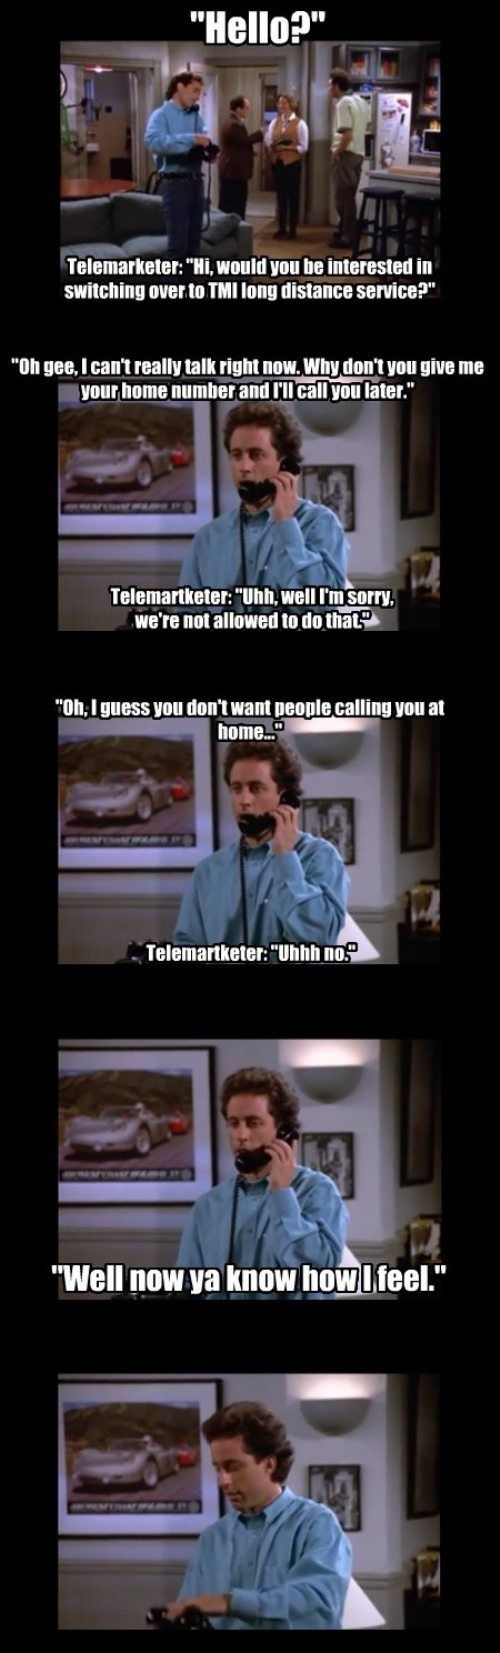 How to deal with telemarketers.